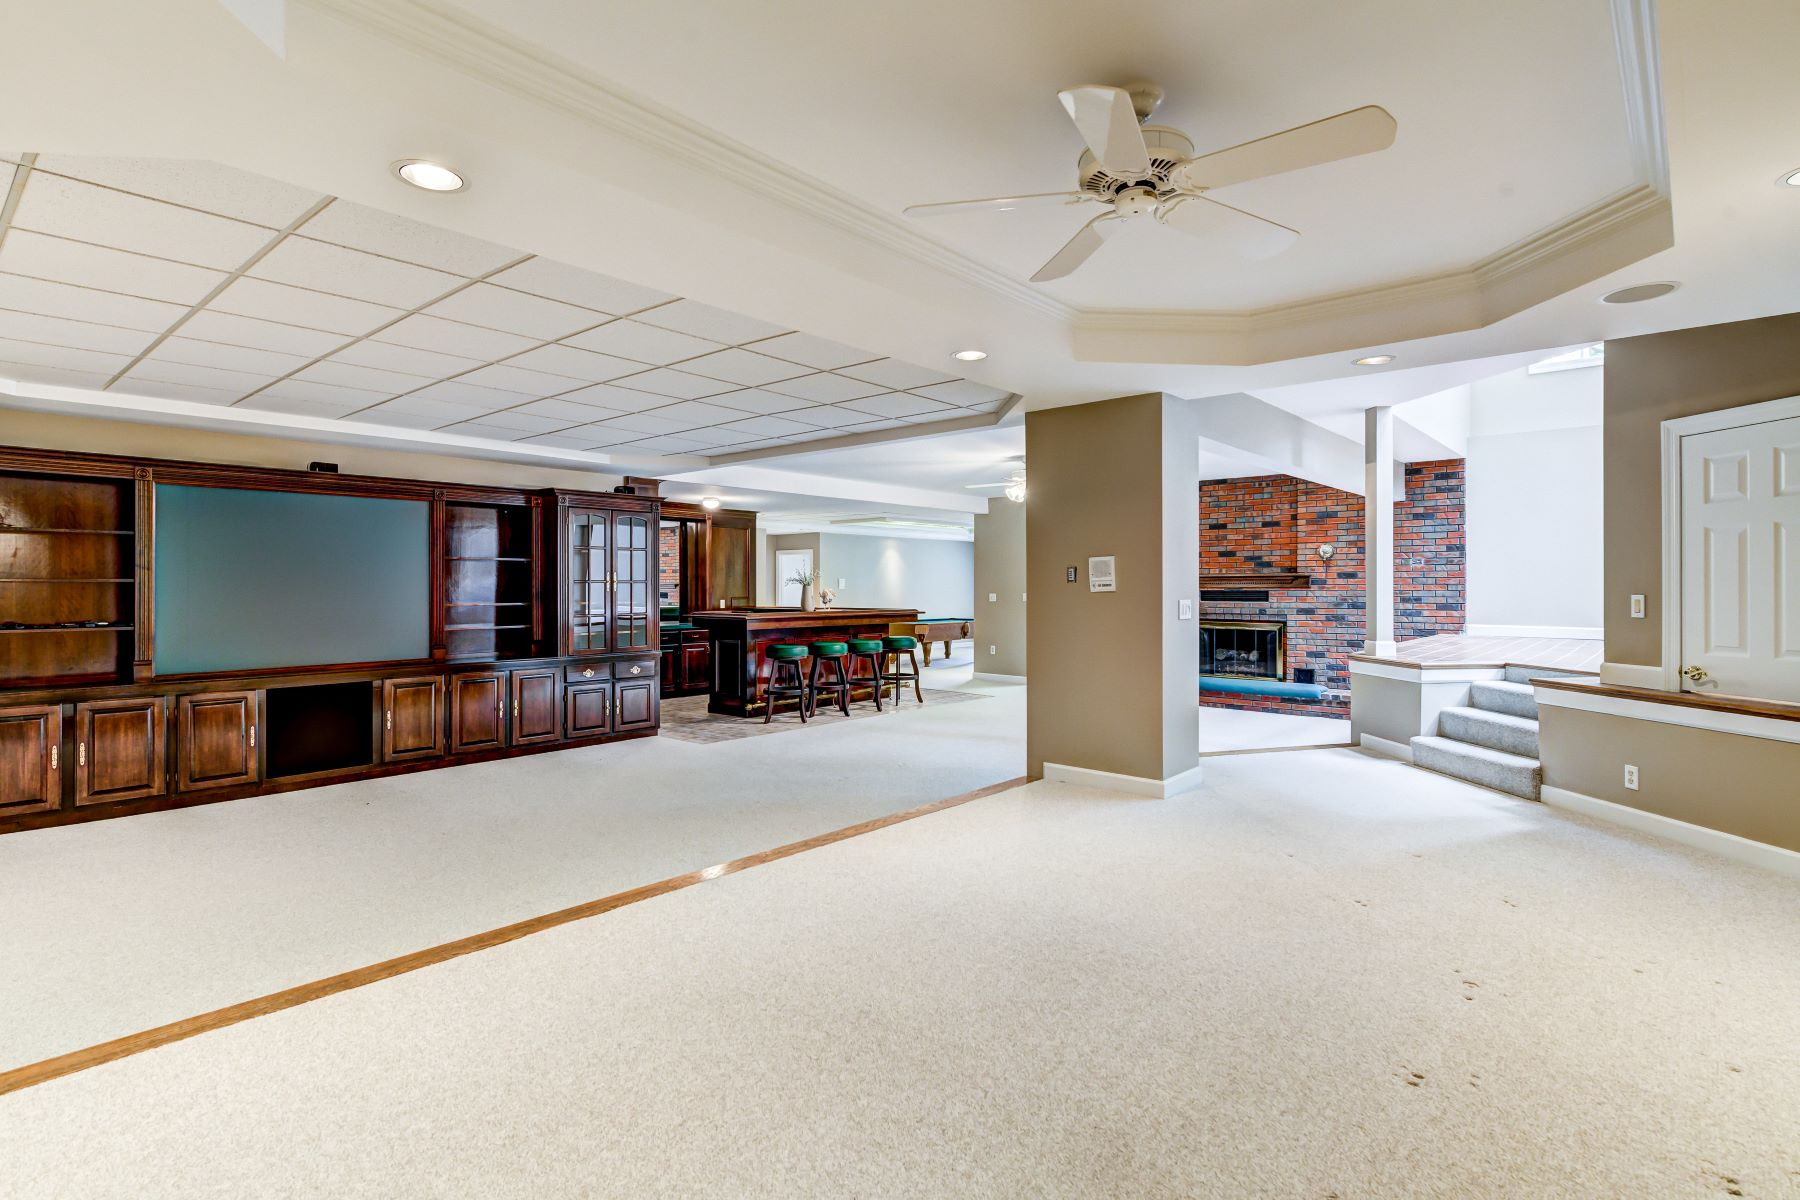 Additional photo for property listing at Spacious executive home in prestigious Meadowbrook Country Club 66 Meadowbrook Country Club Estates Ballwin, Missouri 63011 United States